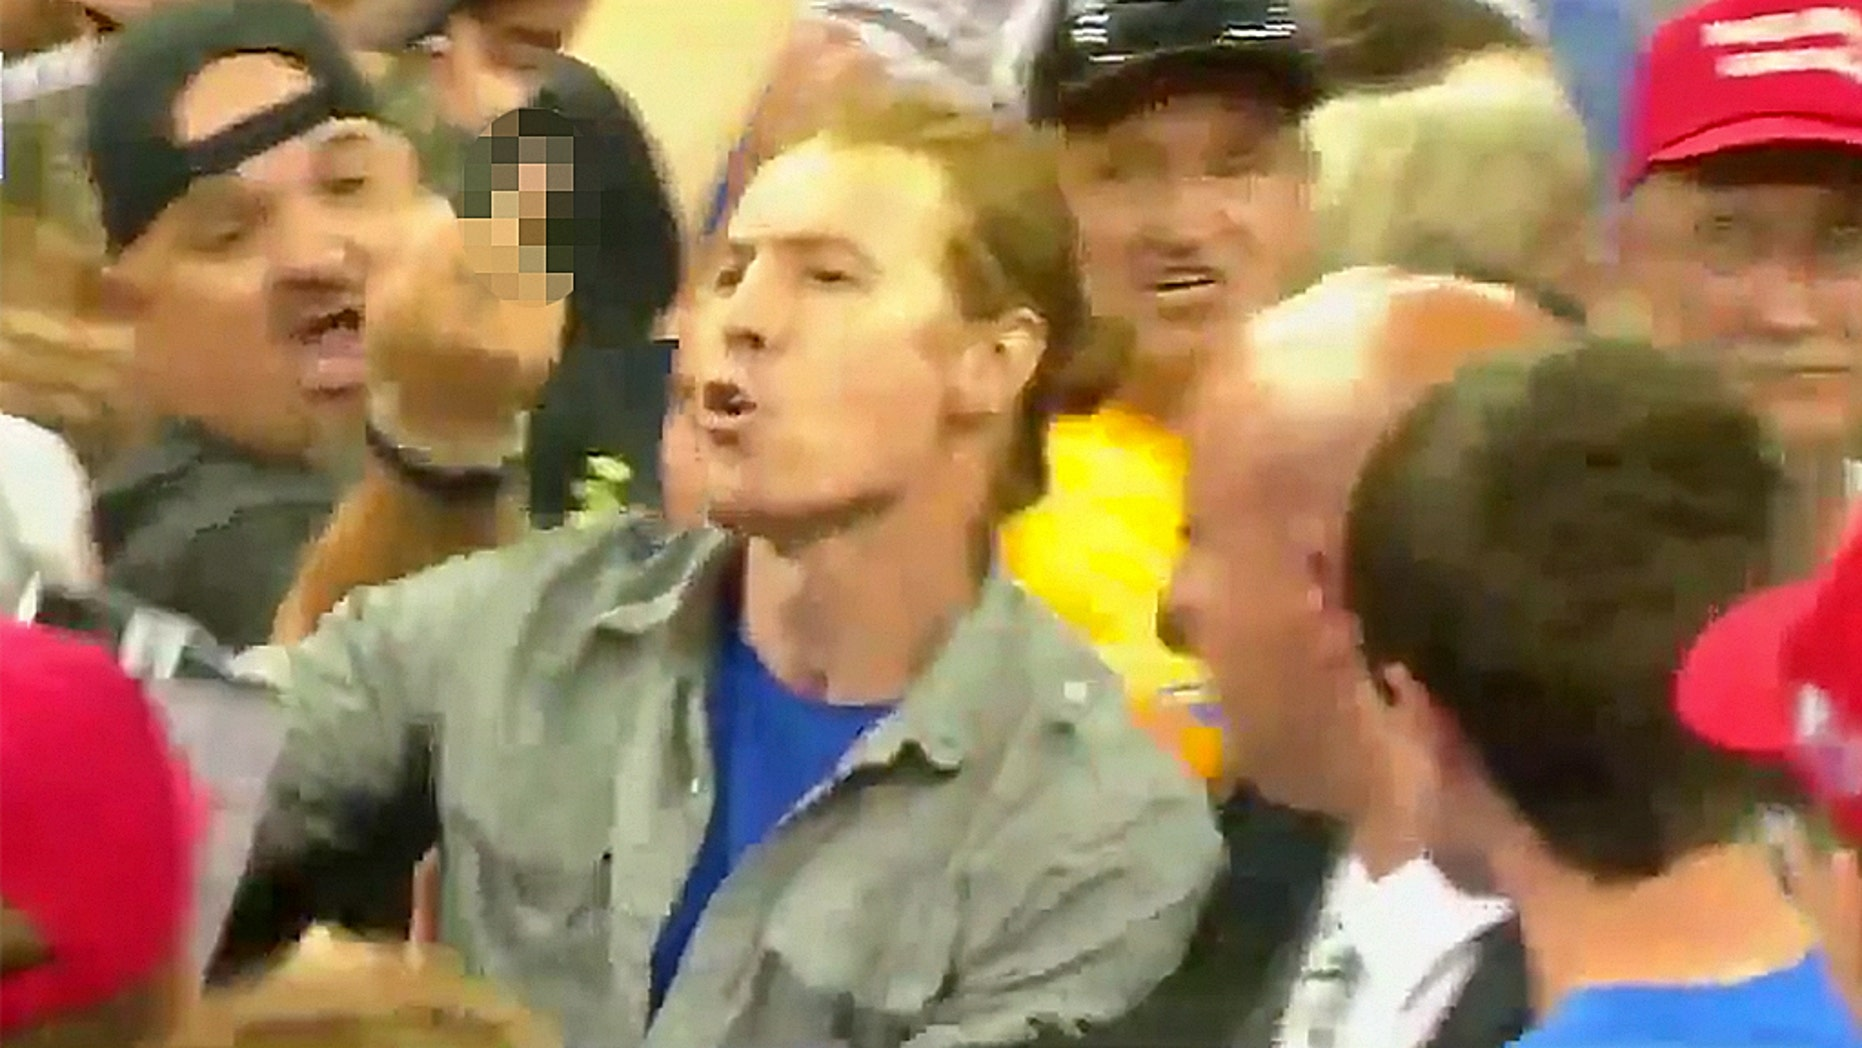 Sam Spadino was removed from a Trump rally in Minnesota Wednesday night.